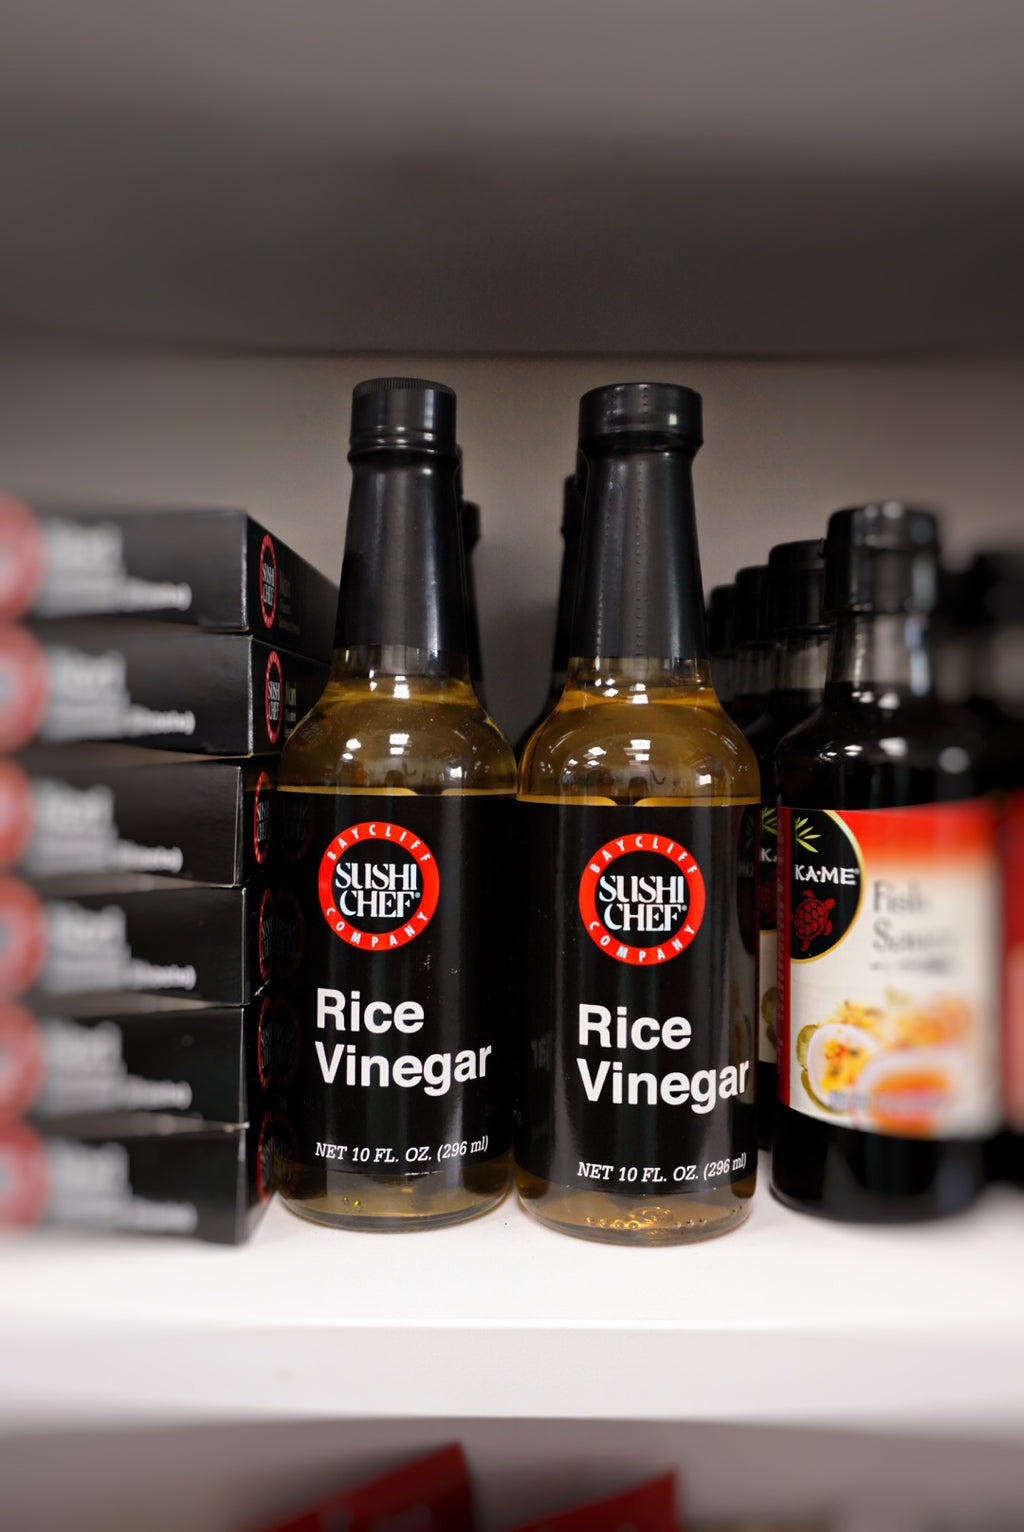 Sushi Chef Rice Vinegar - Delivery